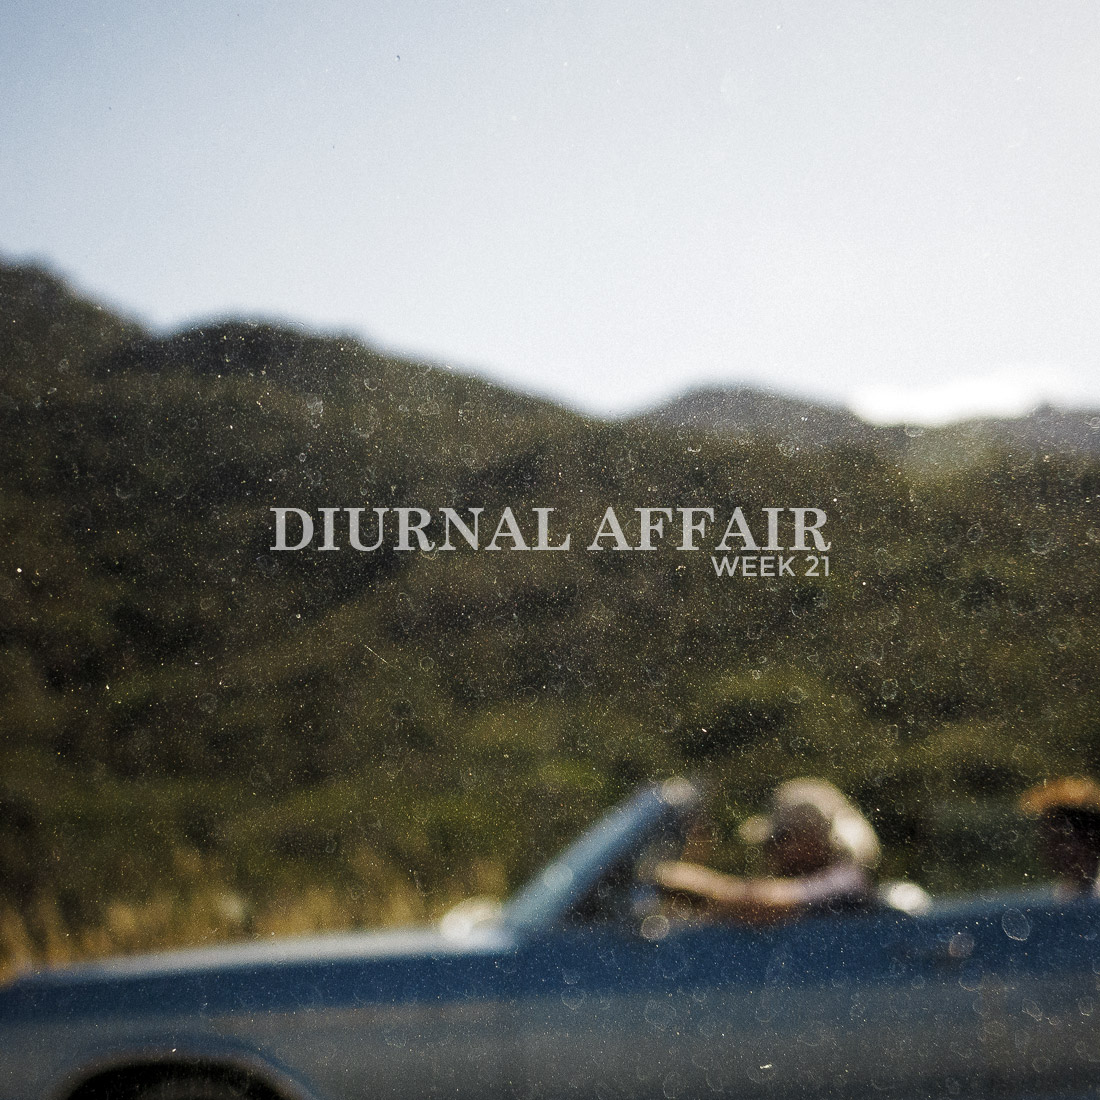 Diurnal Affair by David Bernie